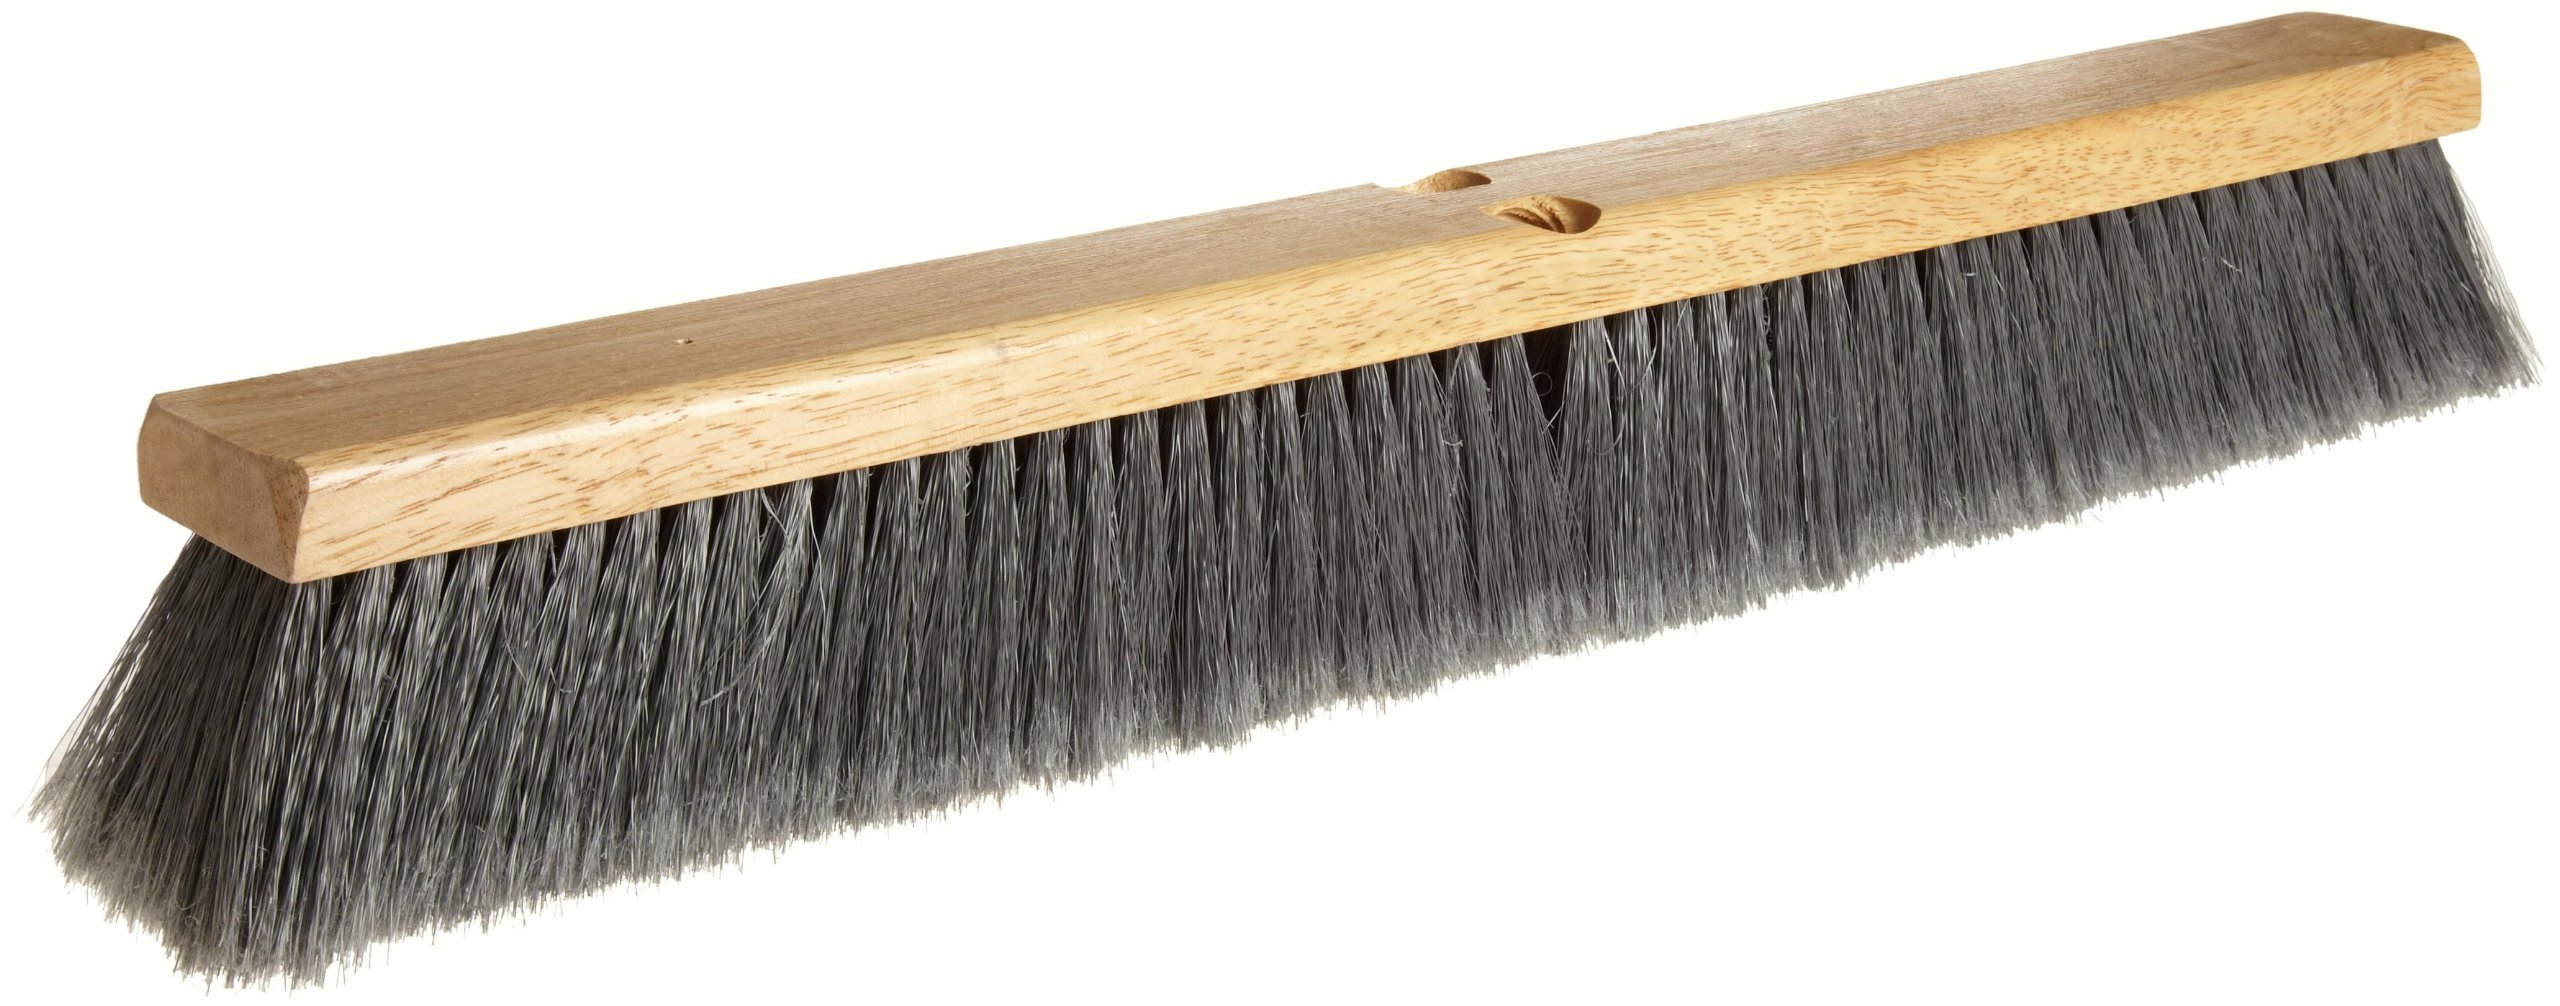 Weiler 42042 Polystyrene Fine Sweep Floor Brush, 2-1/2'' Handle Width, 24'' Overall Length, Natural